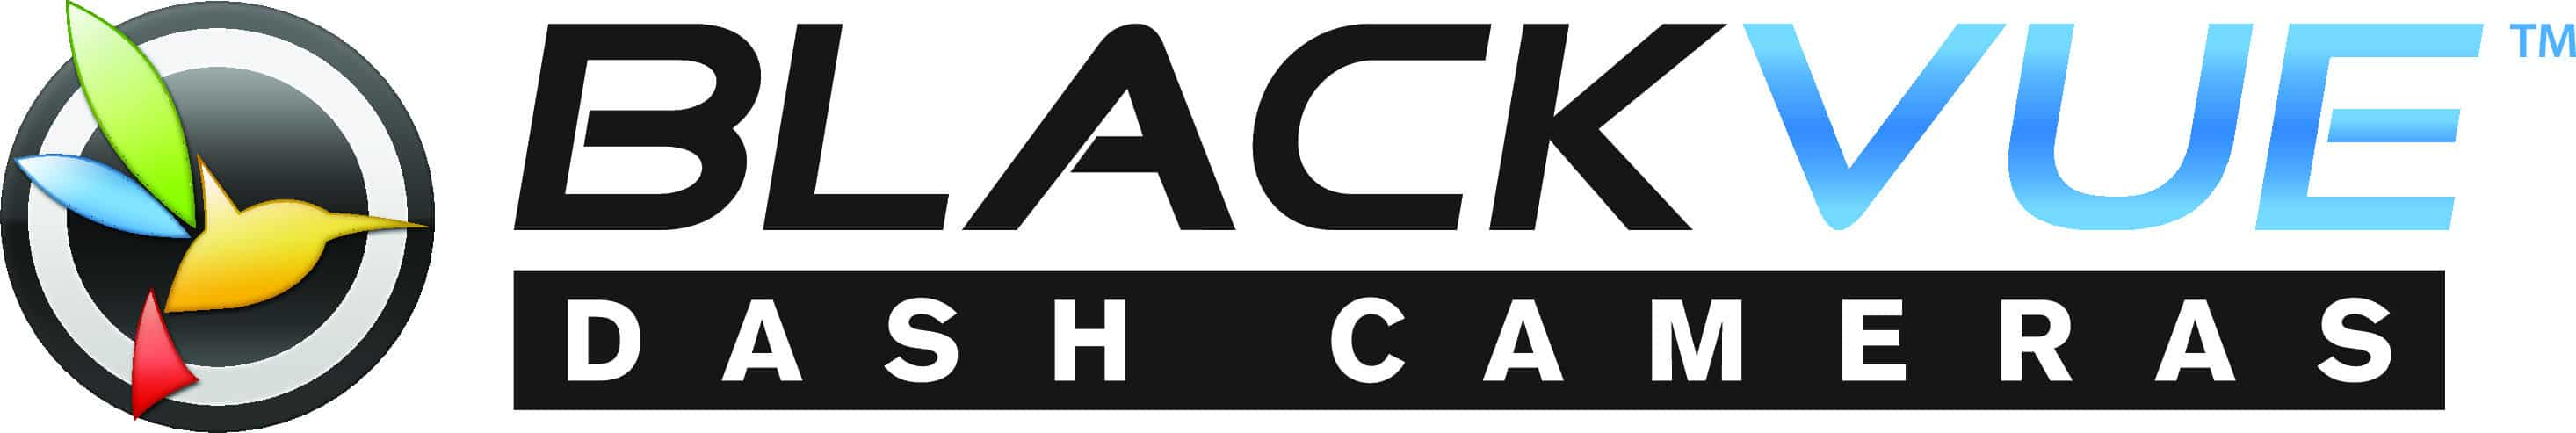 BlackVue-Dash-Cameras-logo-color